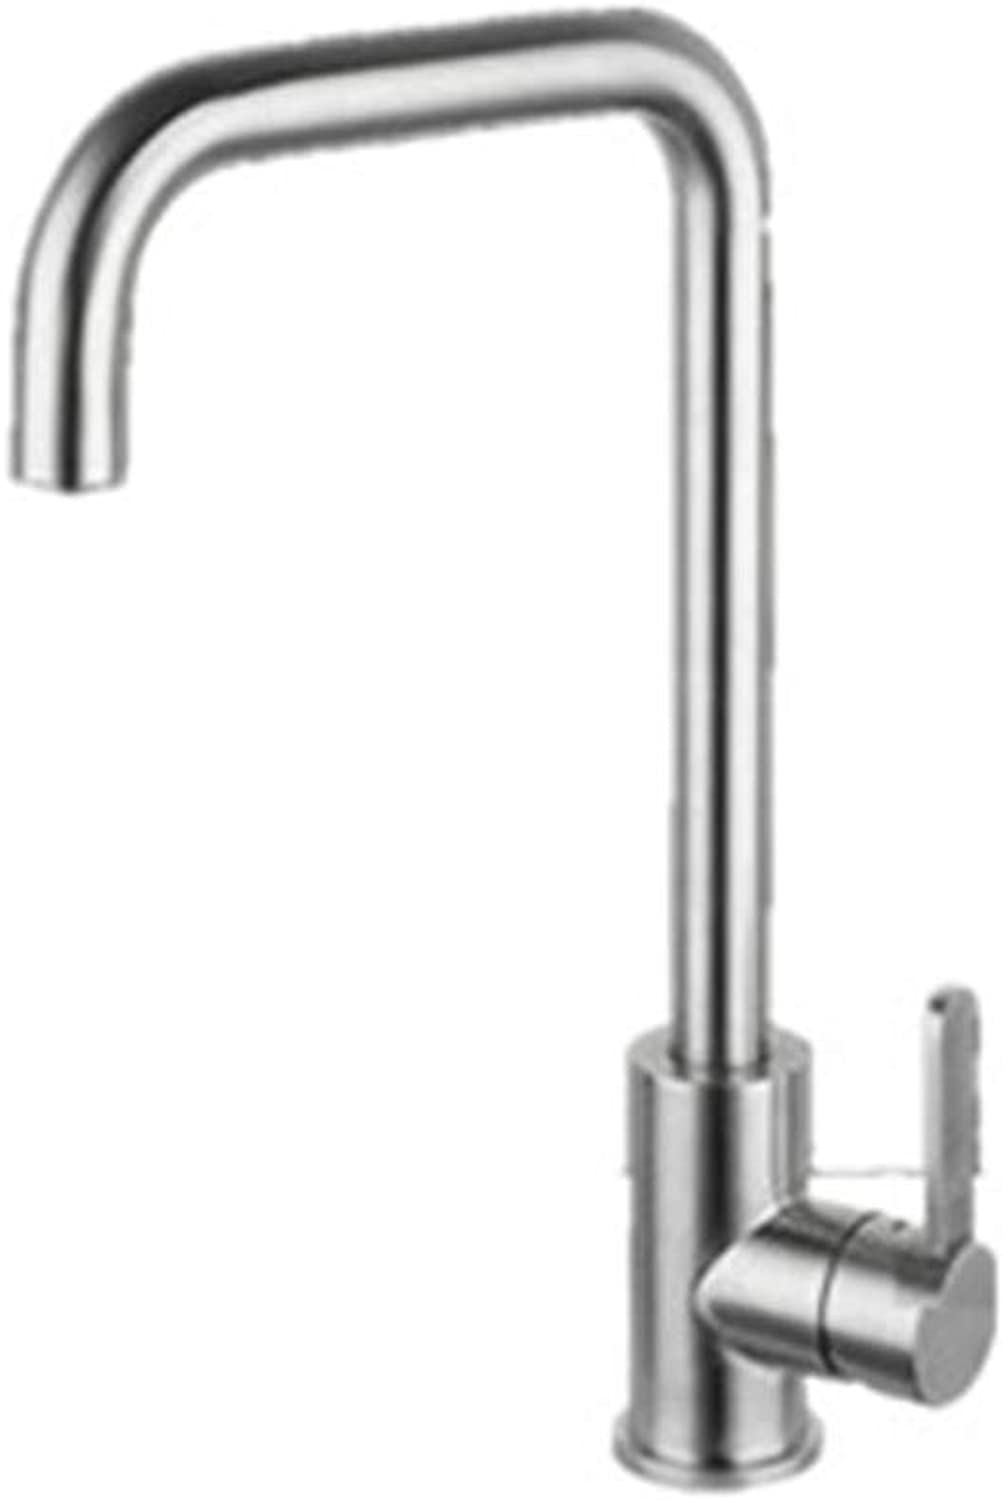 LYBSD Bathroom Sink Taps Hot and cold basin faucets can be turned into the bathroom sink kitchen. Kitchen faucet piping